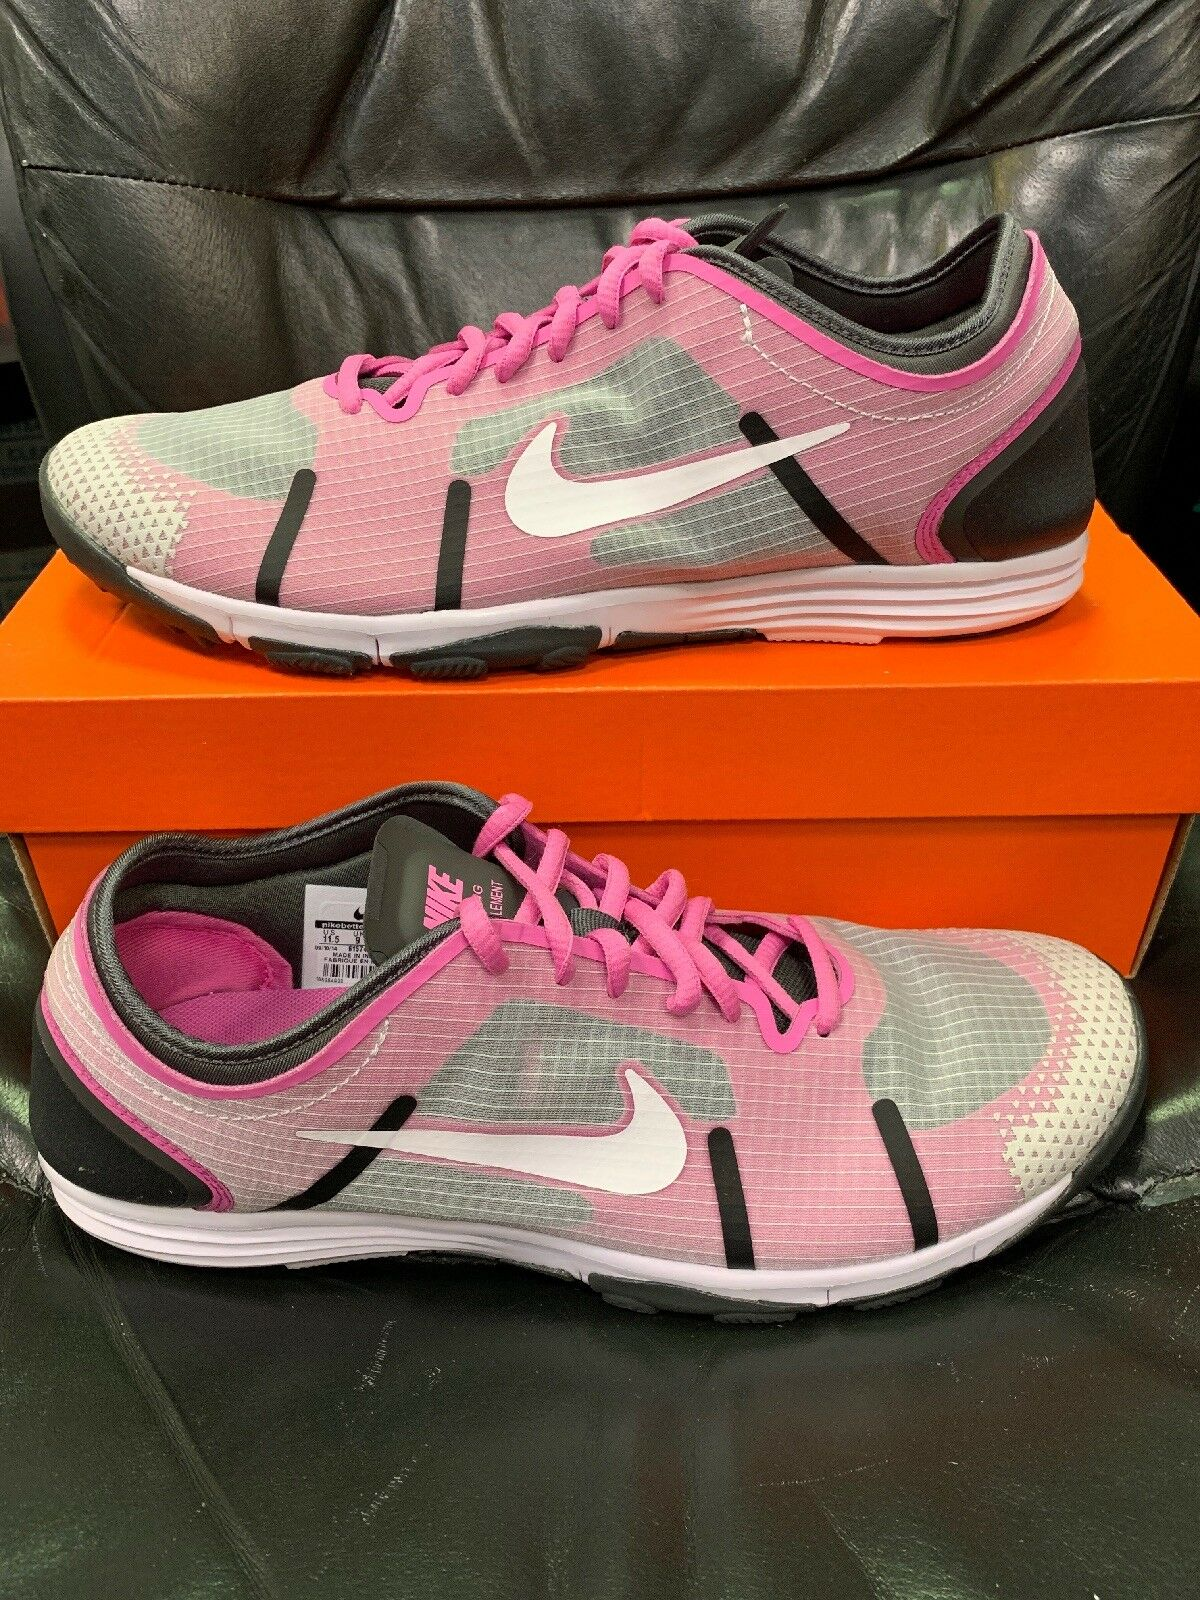 New In Box Womens Nike Lunarelement Size 11.5 Style 614743 003